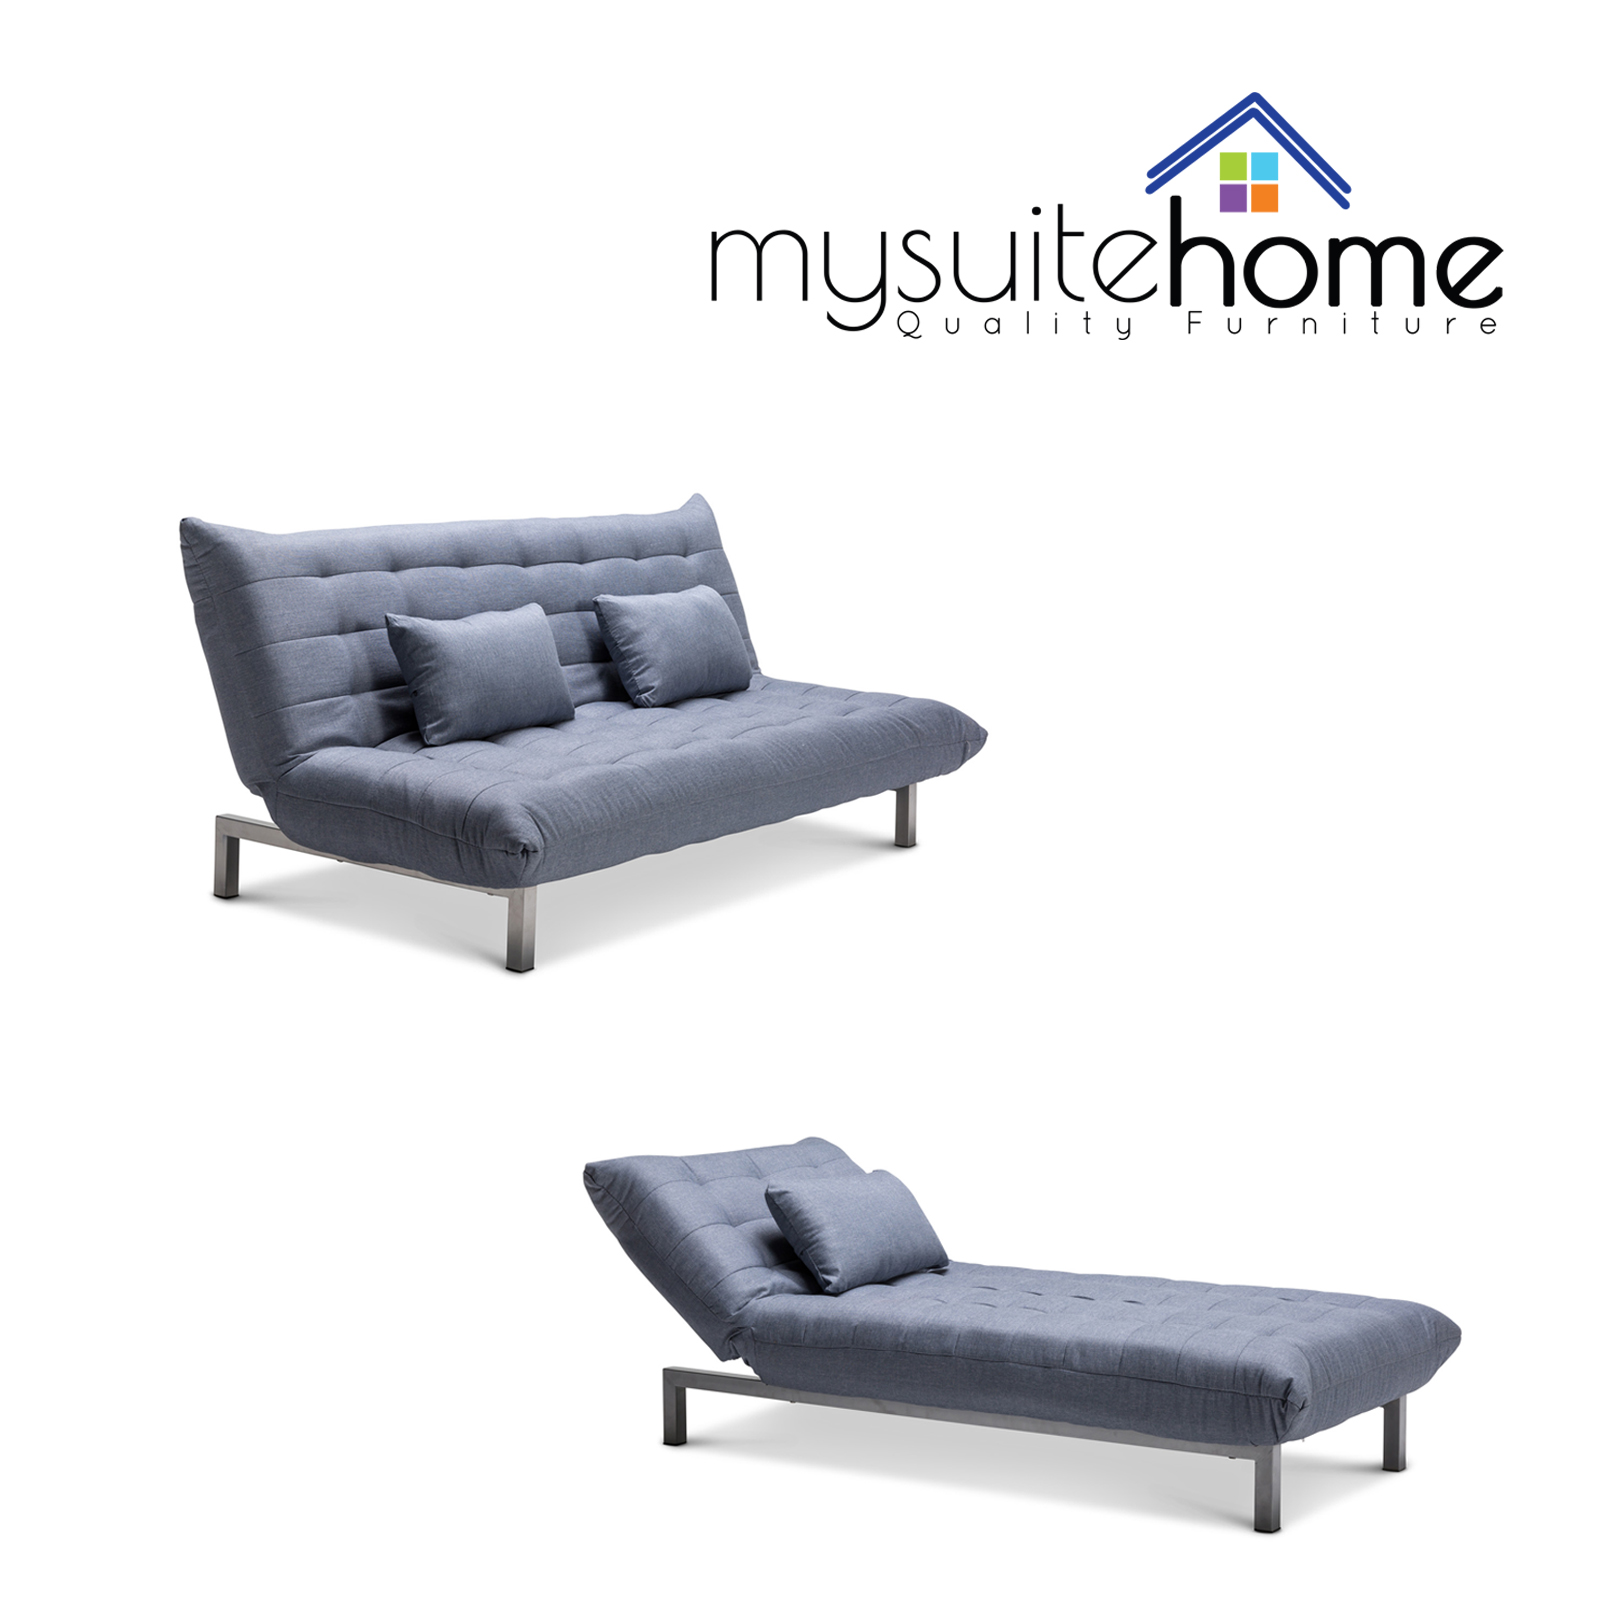 York Fabric Click Clack 3 Seater Modular Lounge Sofa Bed Futon Couch